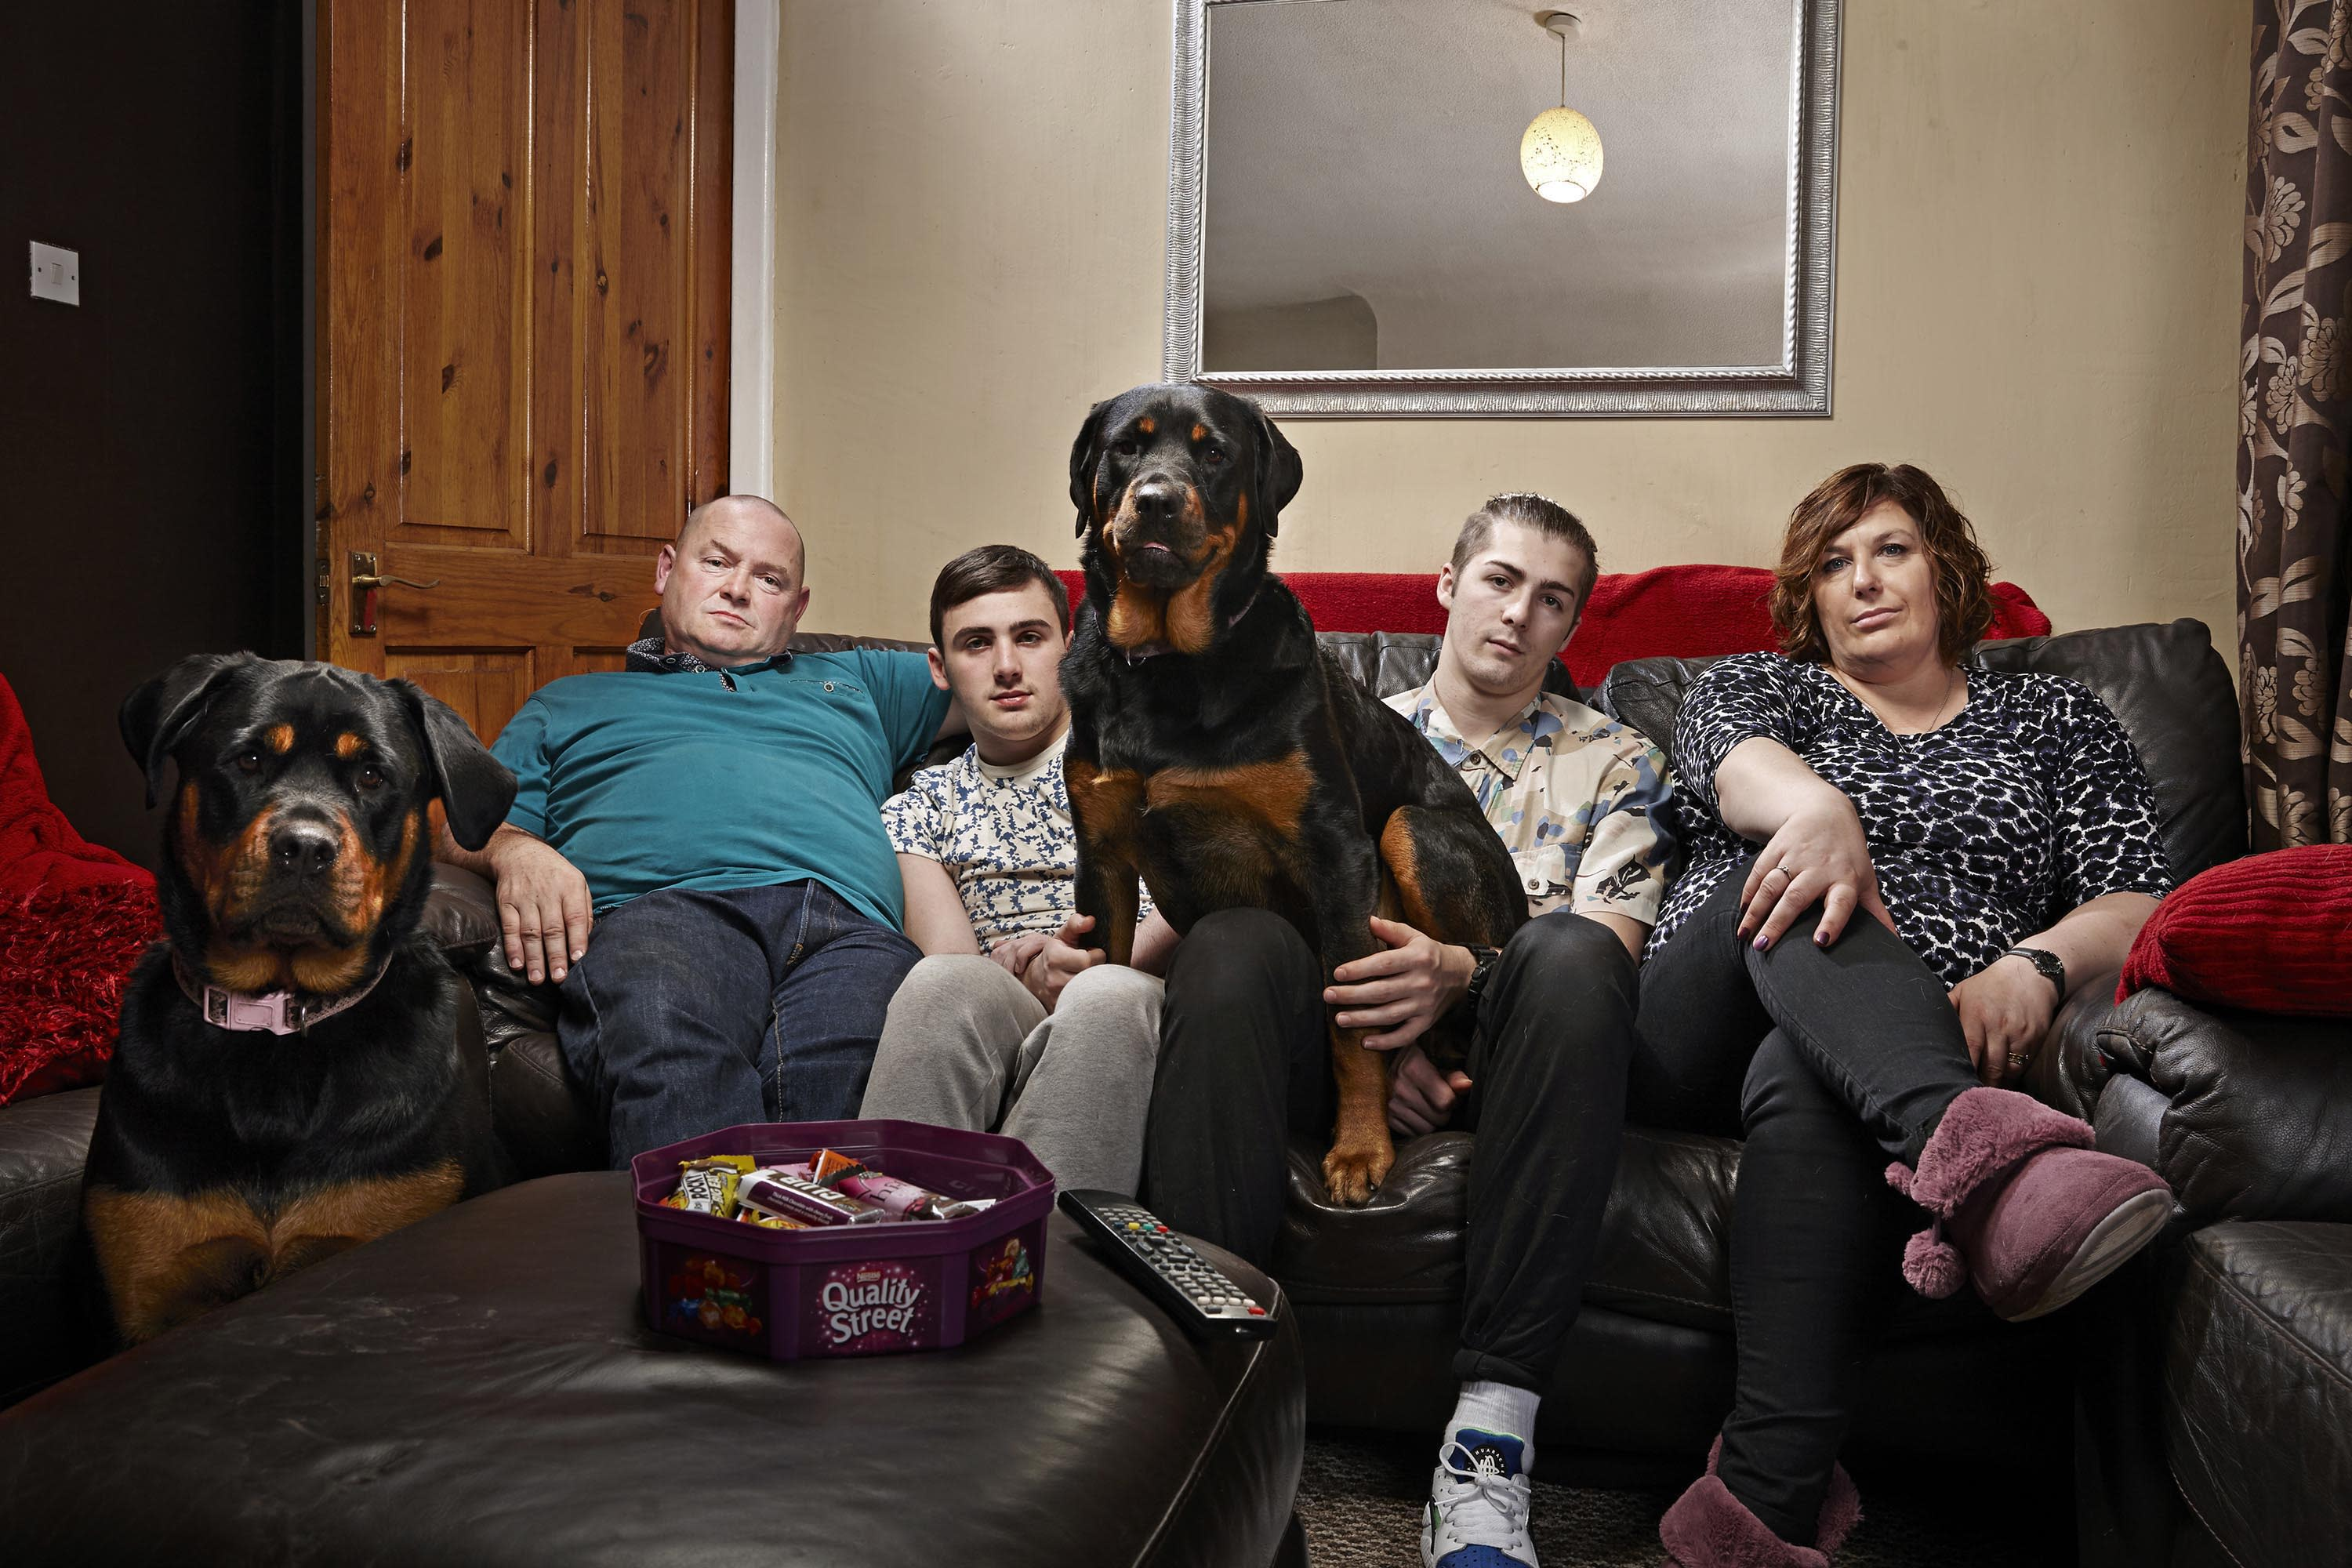 Tom Malone (2nd from right) found fame on Gogglebox with his family. (Channel 4)